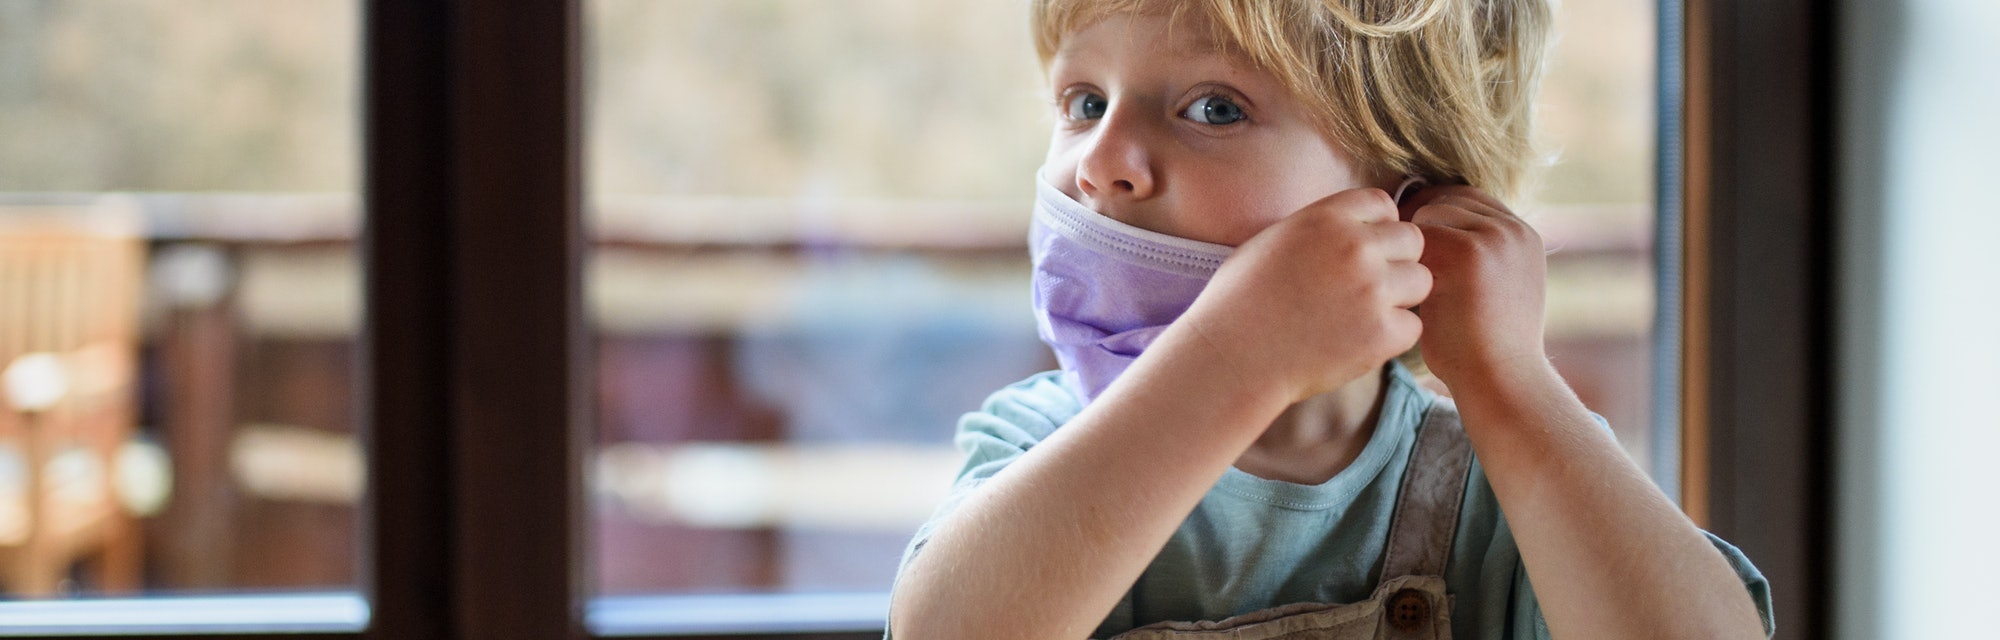 Experts weigh in on how often children should be wearing masks around vaccinated adults.